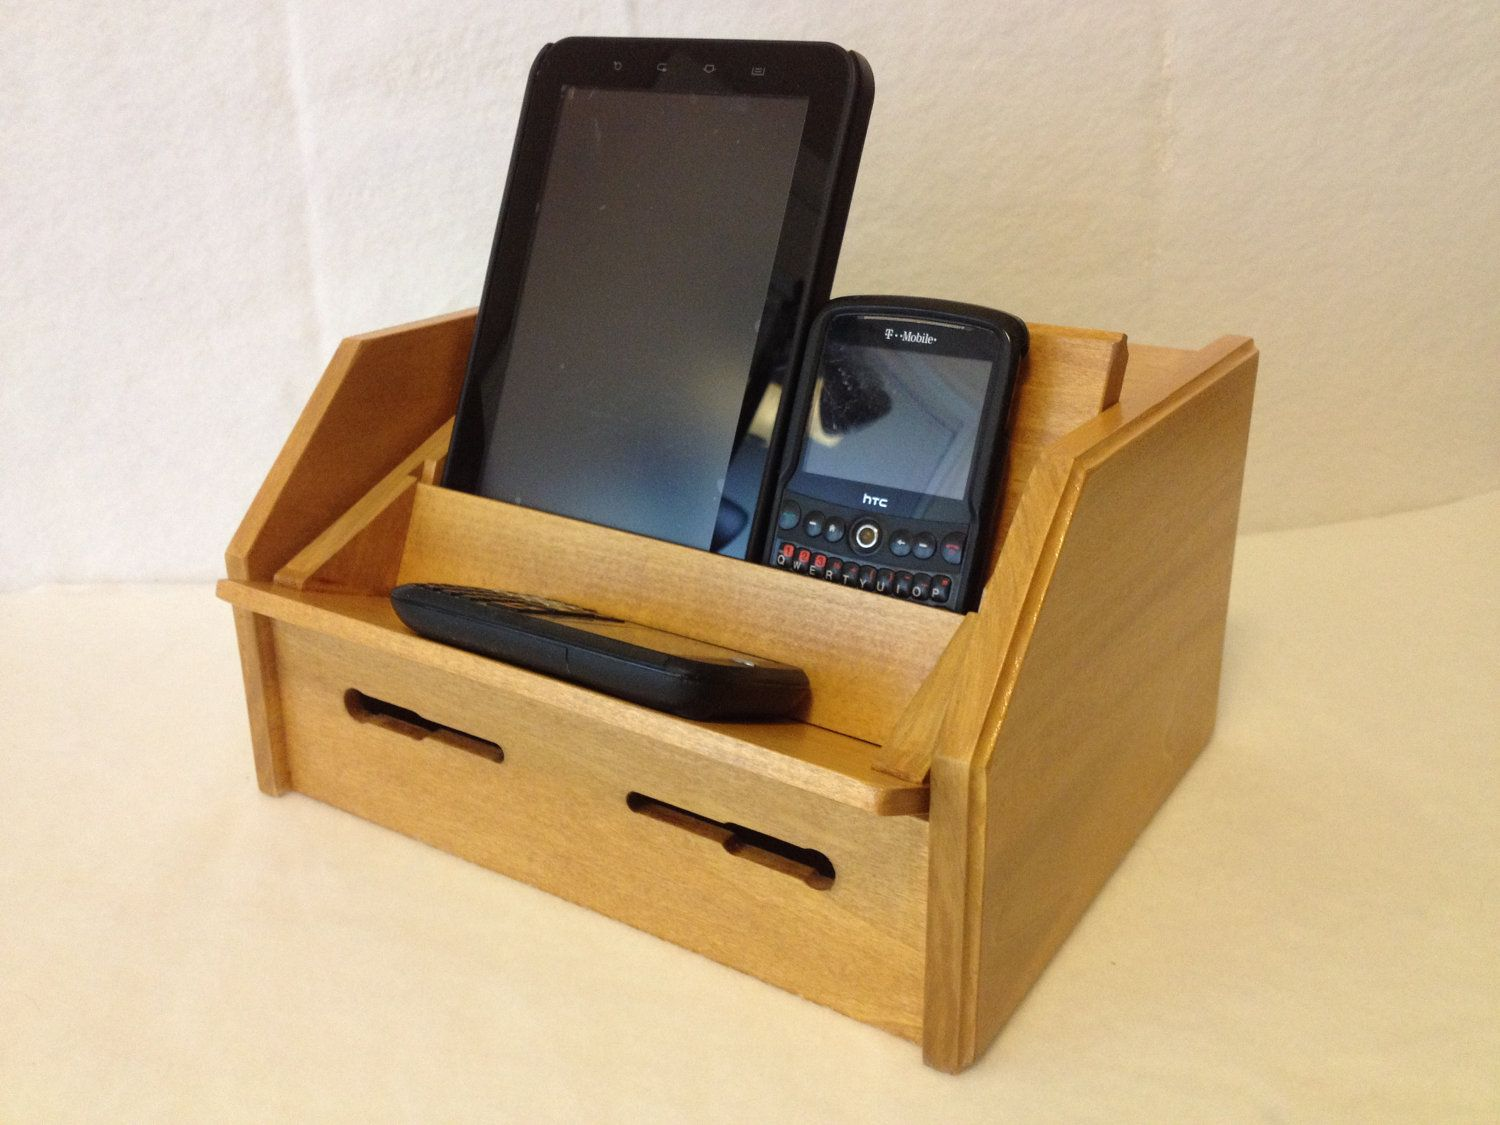 Gift Under 50 Cell Phone Charging Station For Ipod Ipad Iphone And Many More Holds 3 D Cell Phone Charging Station Phone Charging Phone Charging Station